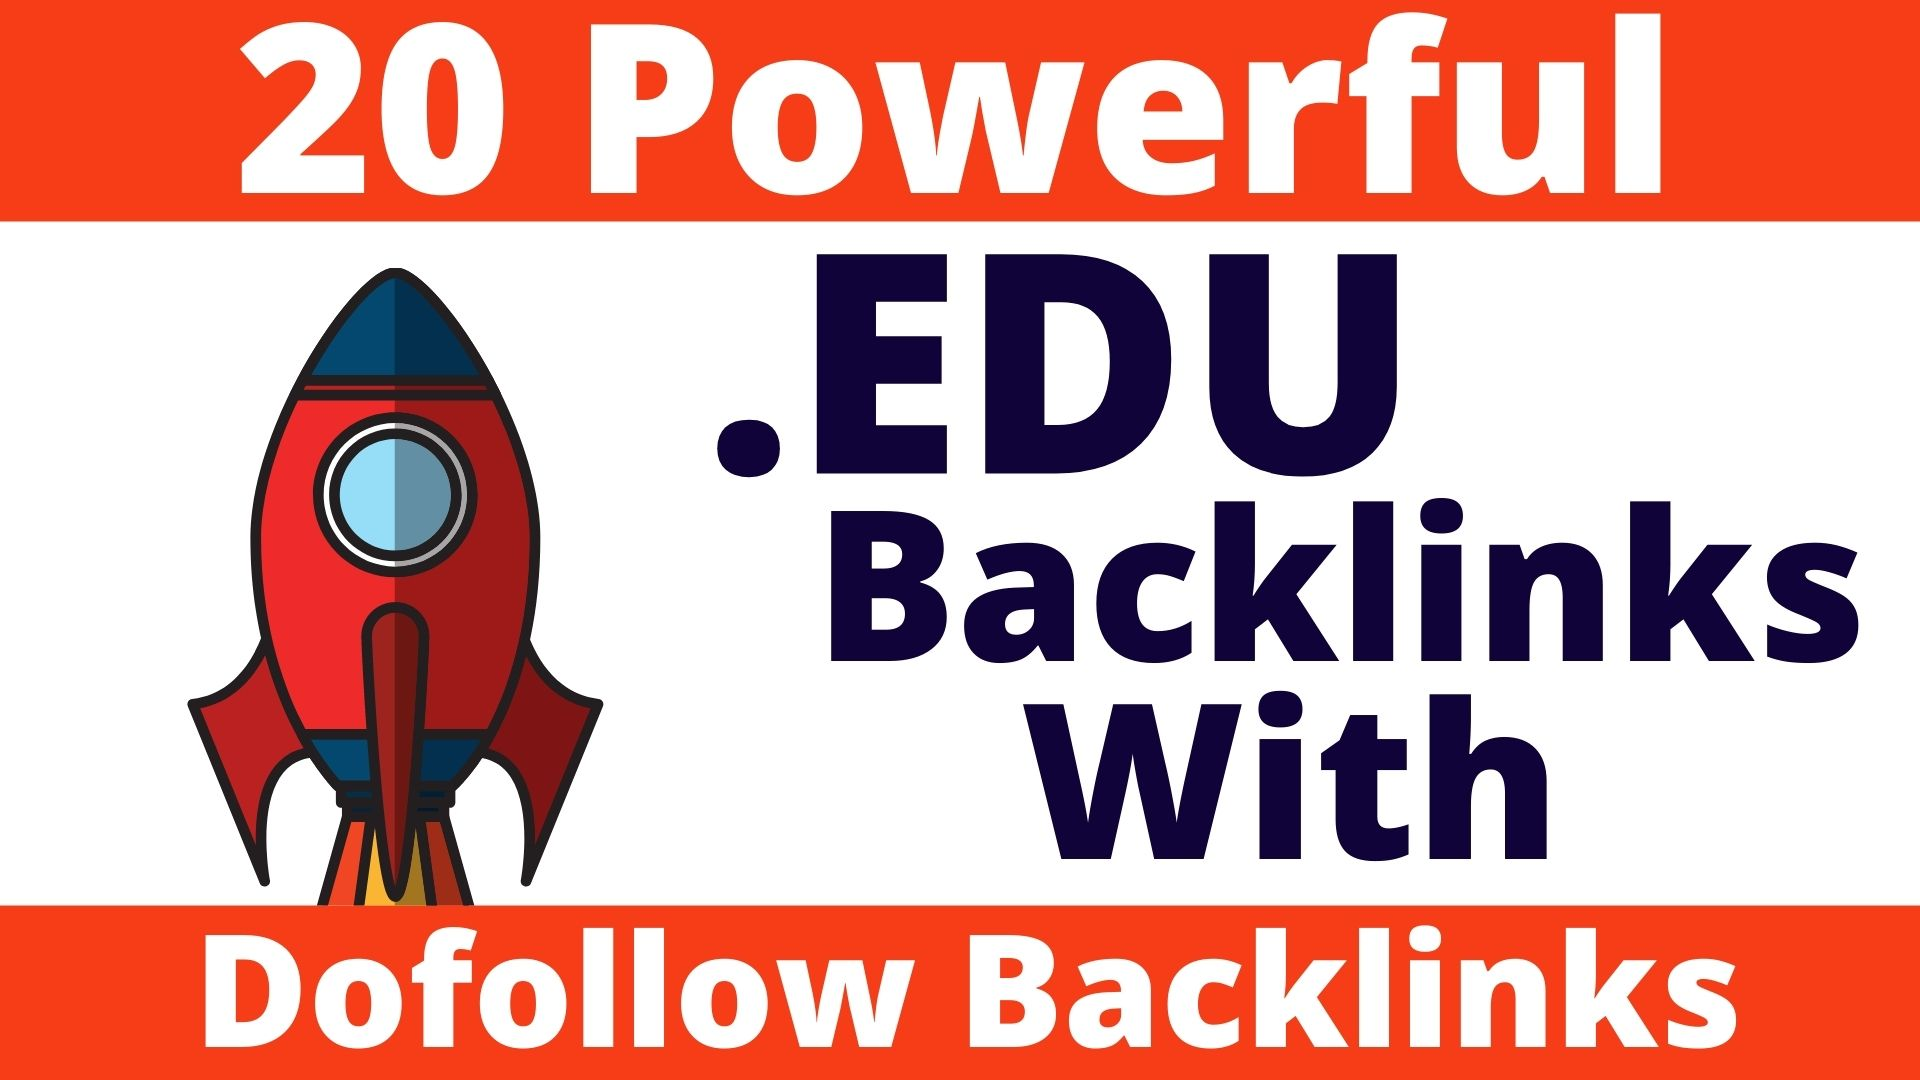 20 Powerful Profile. EDU Backlinks Manually Created from Top Rated Universities with Quick Delivery